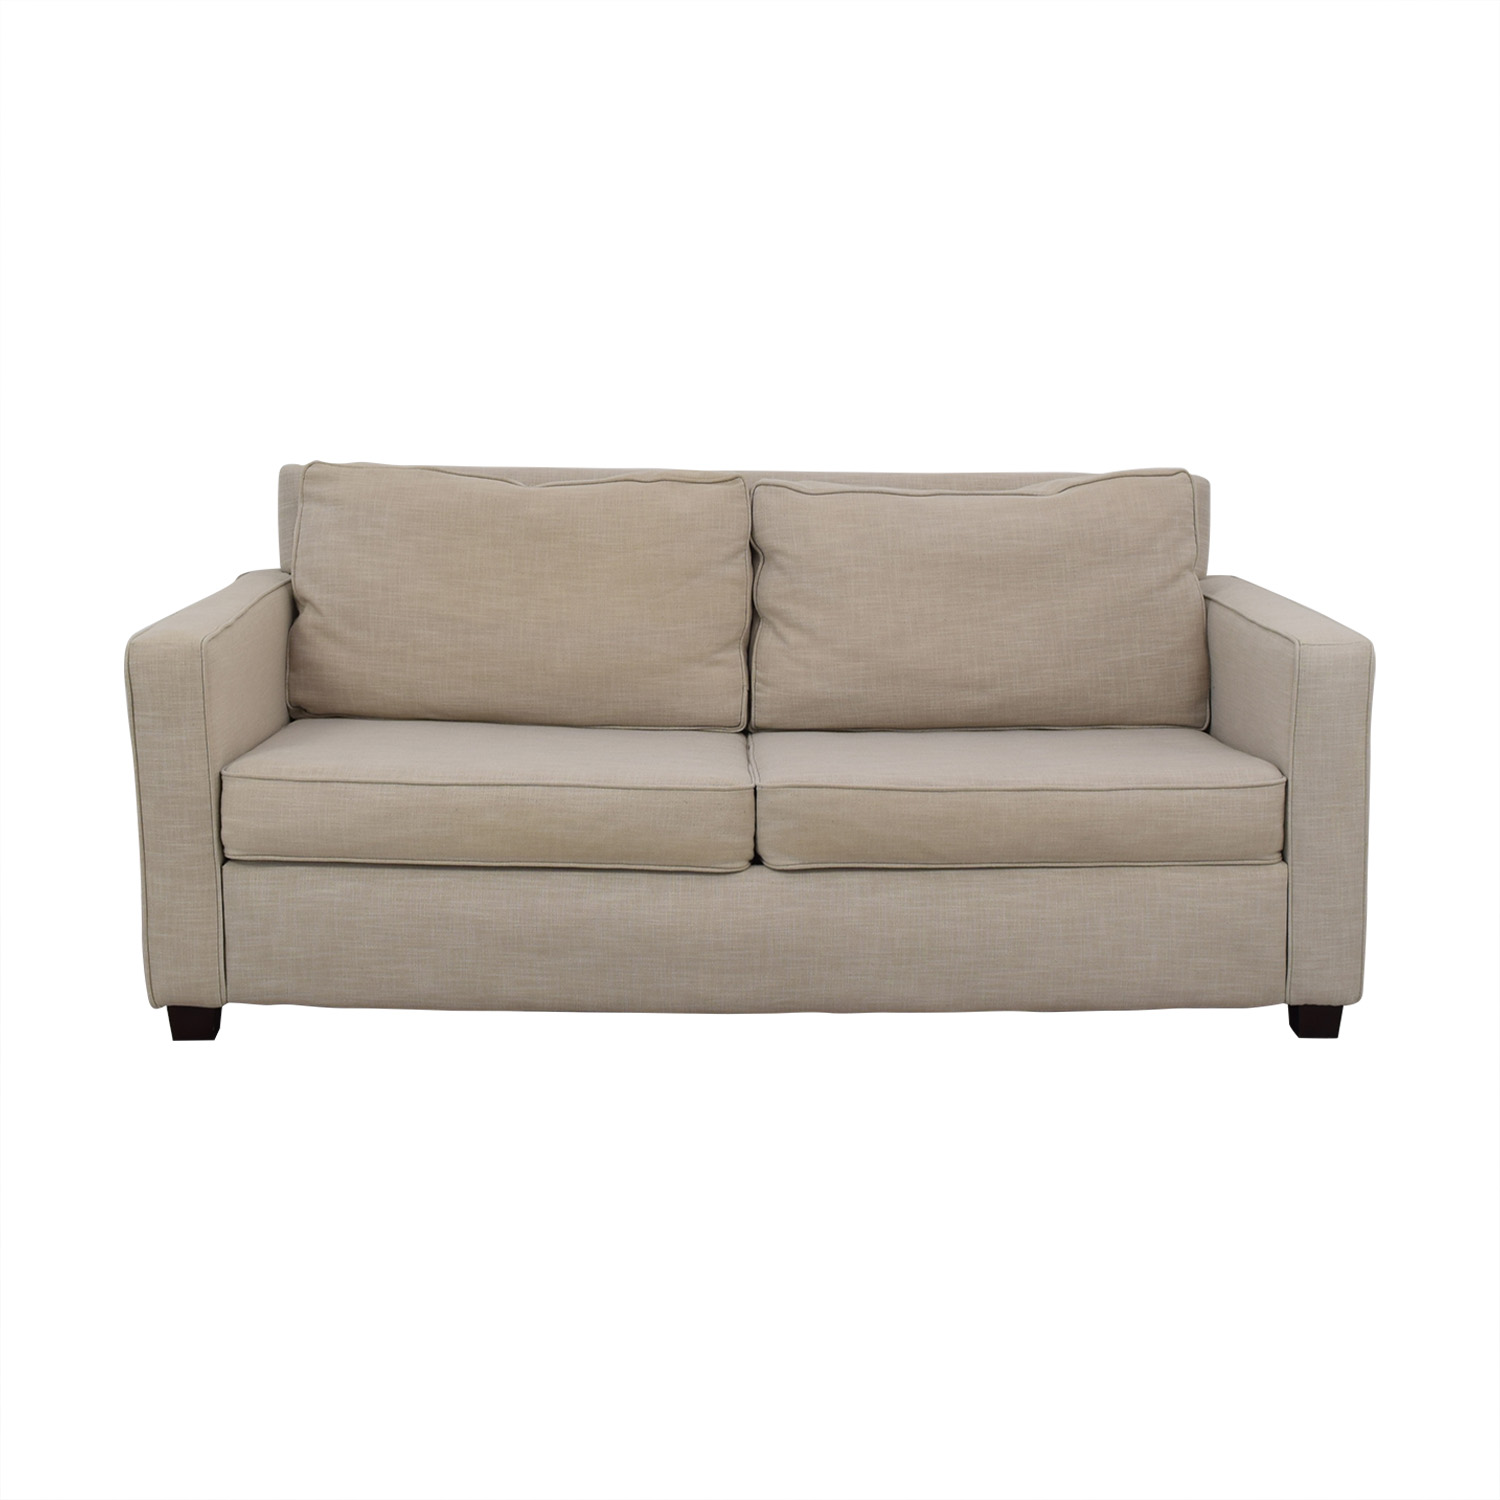 West Elm West Elm Henry Sofa price